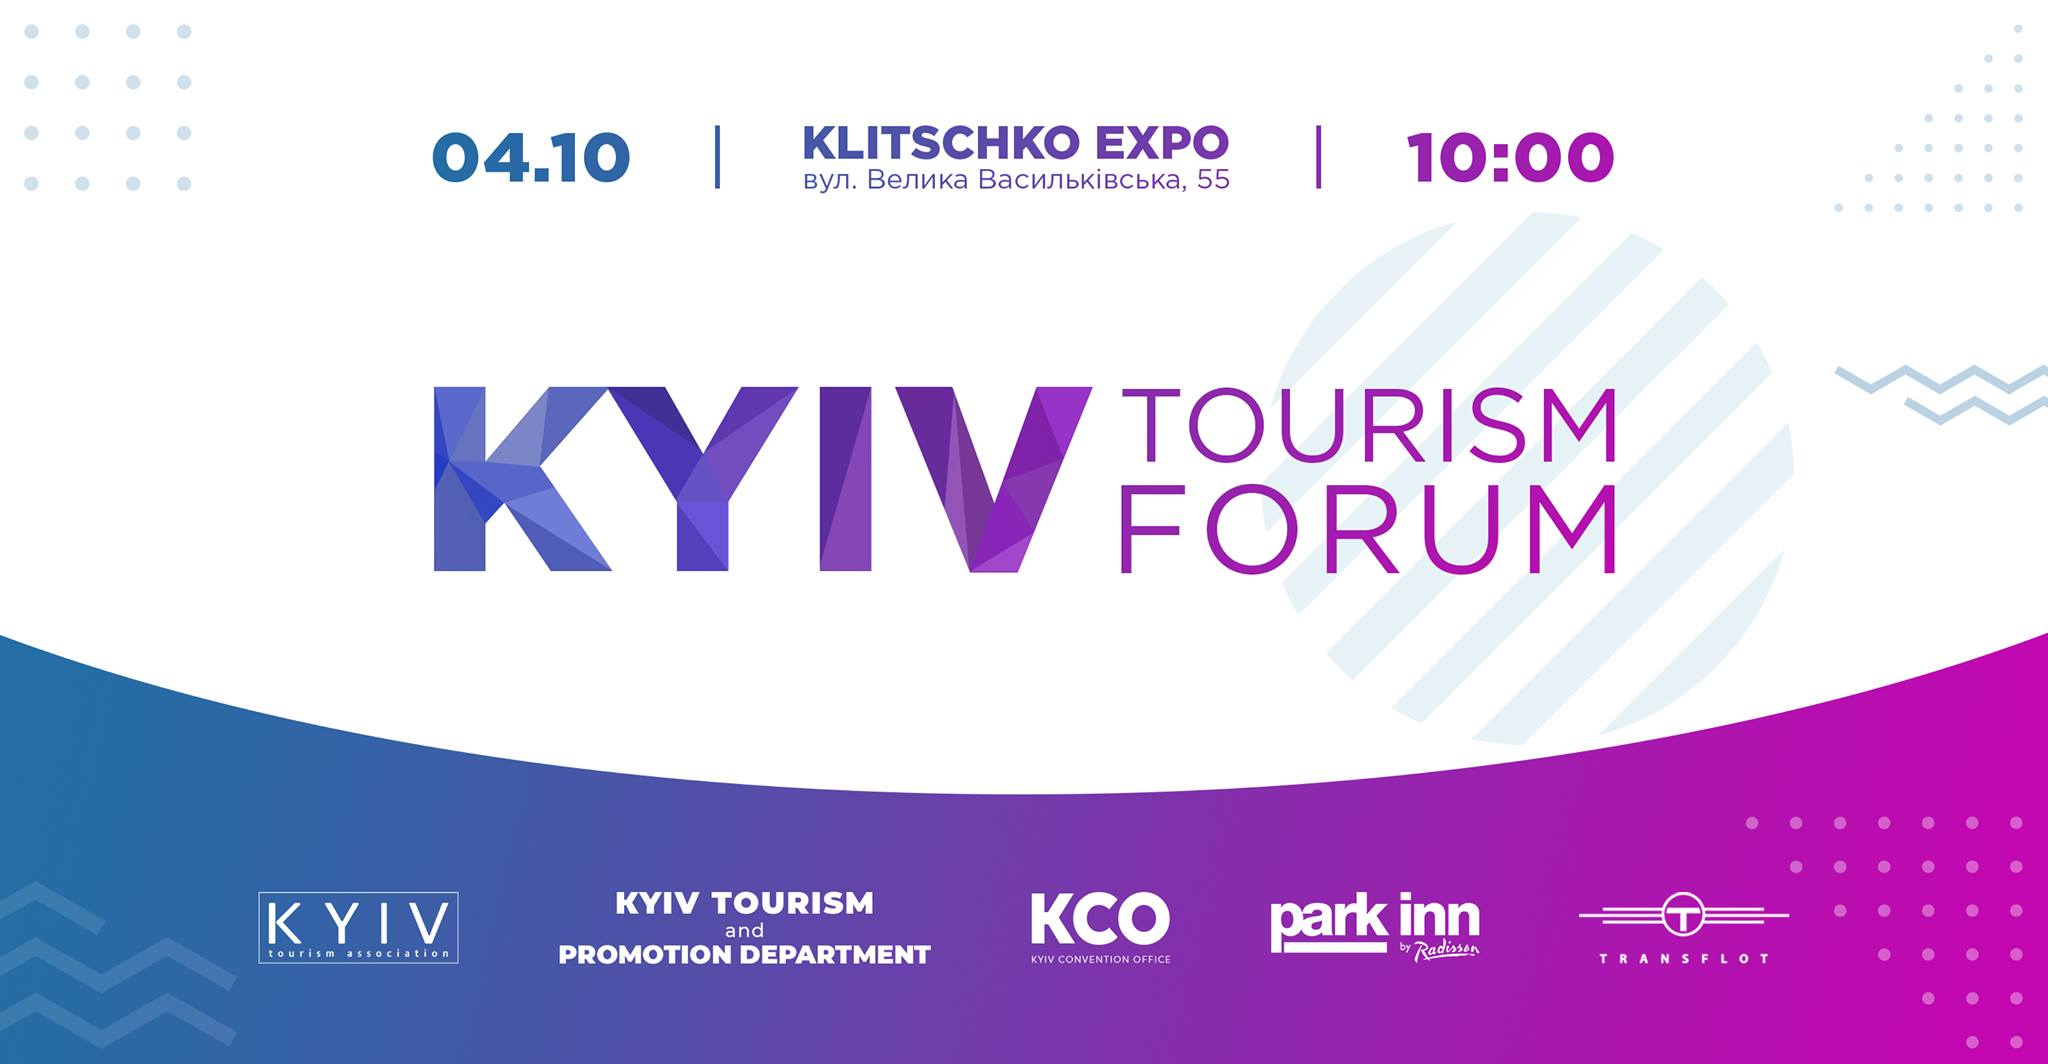 Kyiv Tourism Forum 2019. World cases